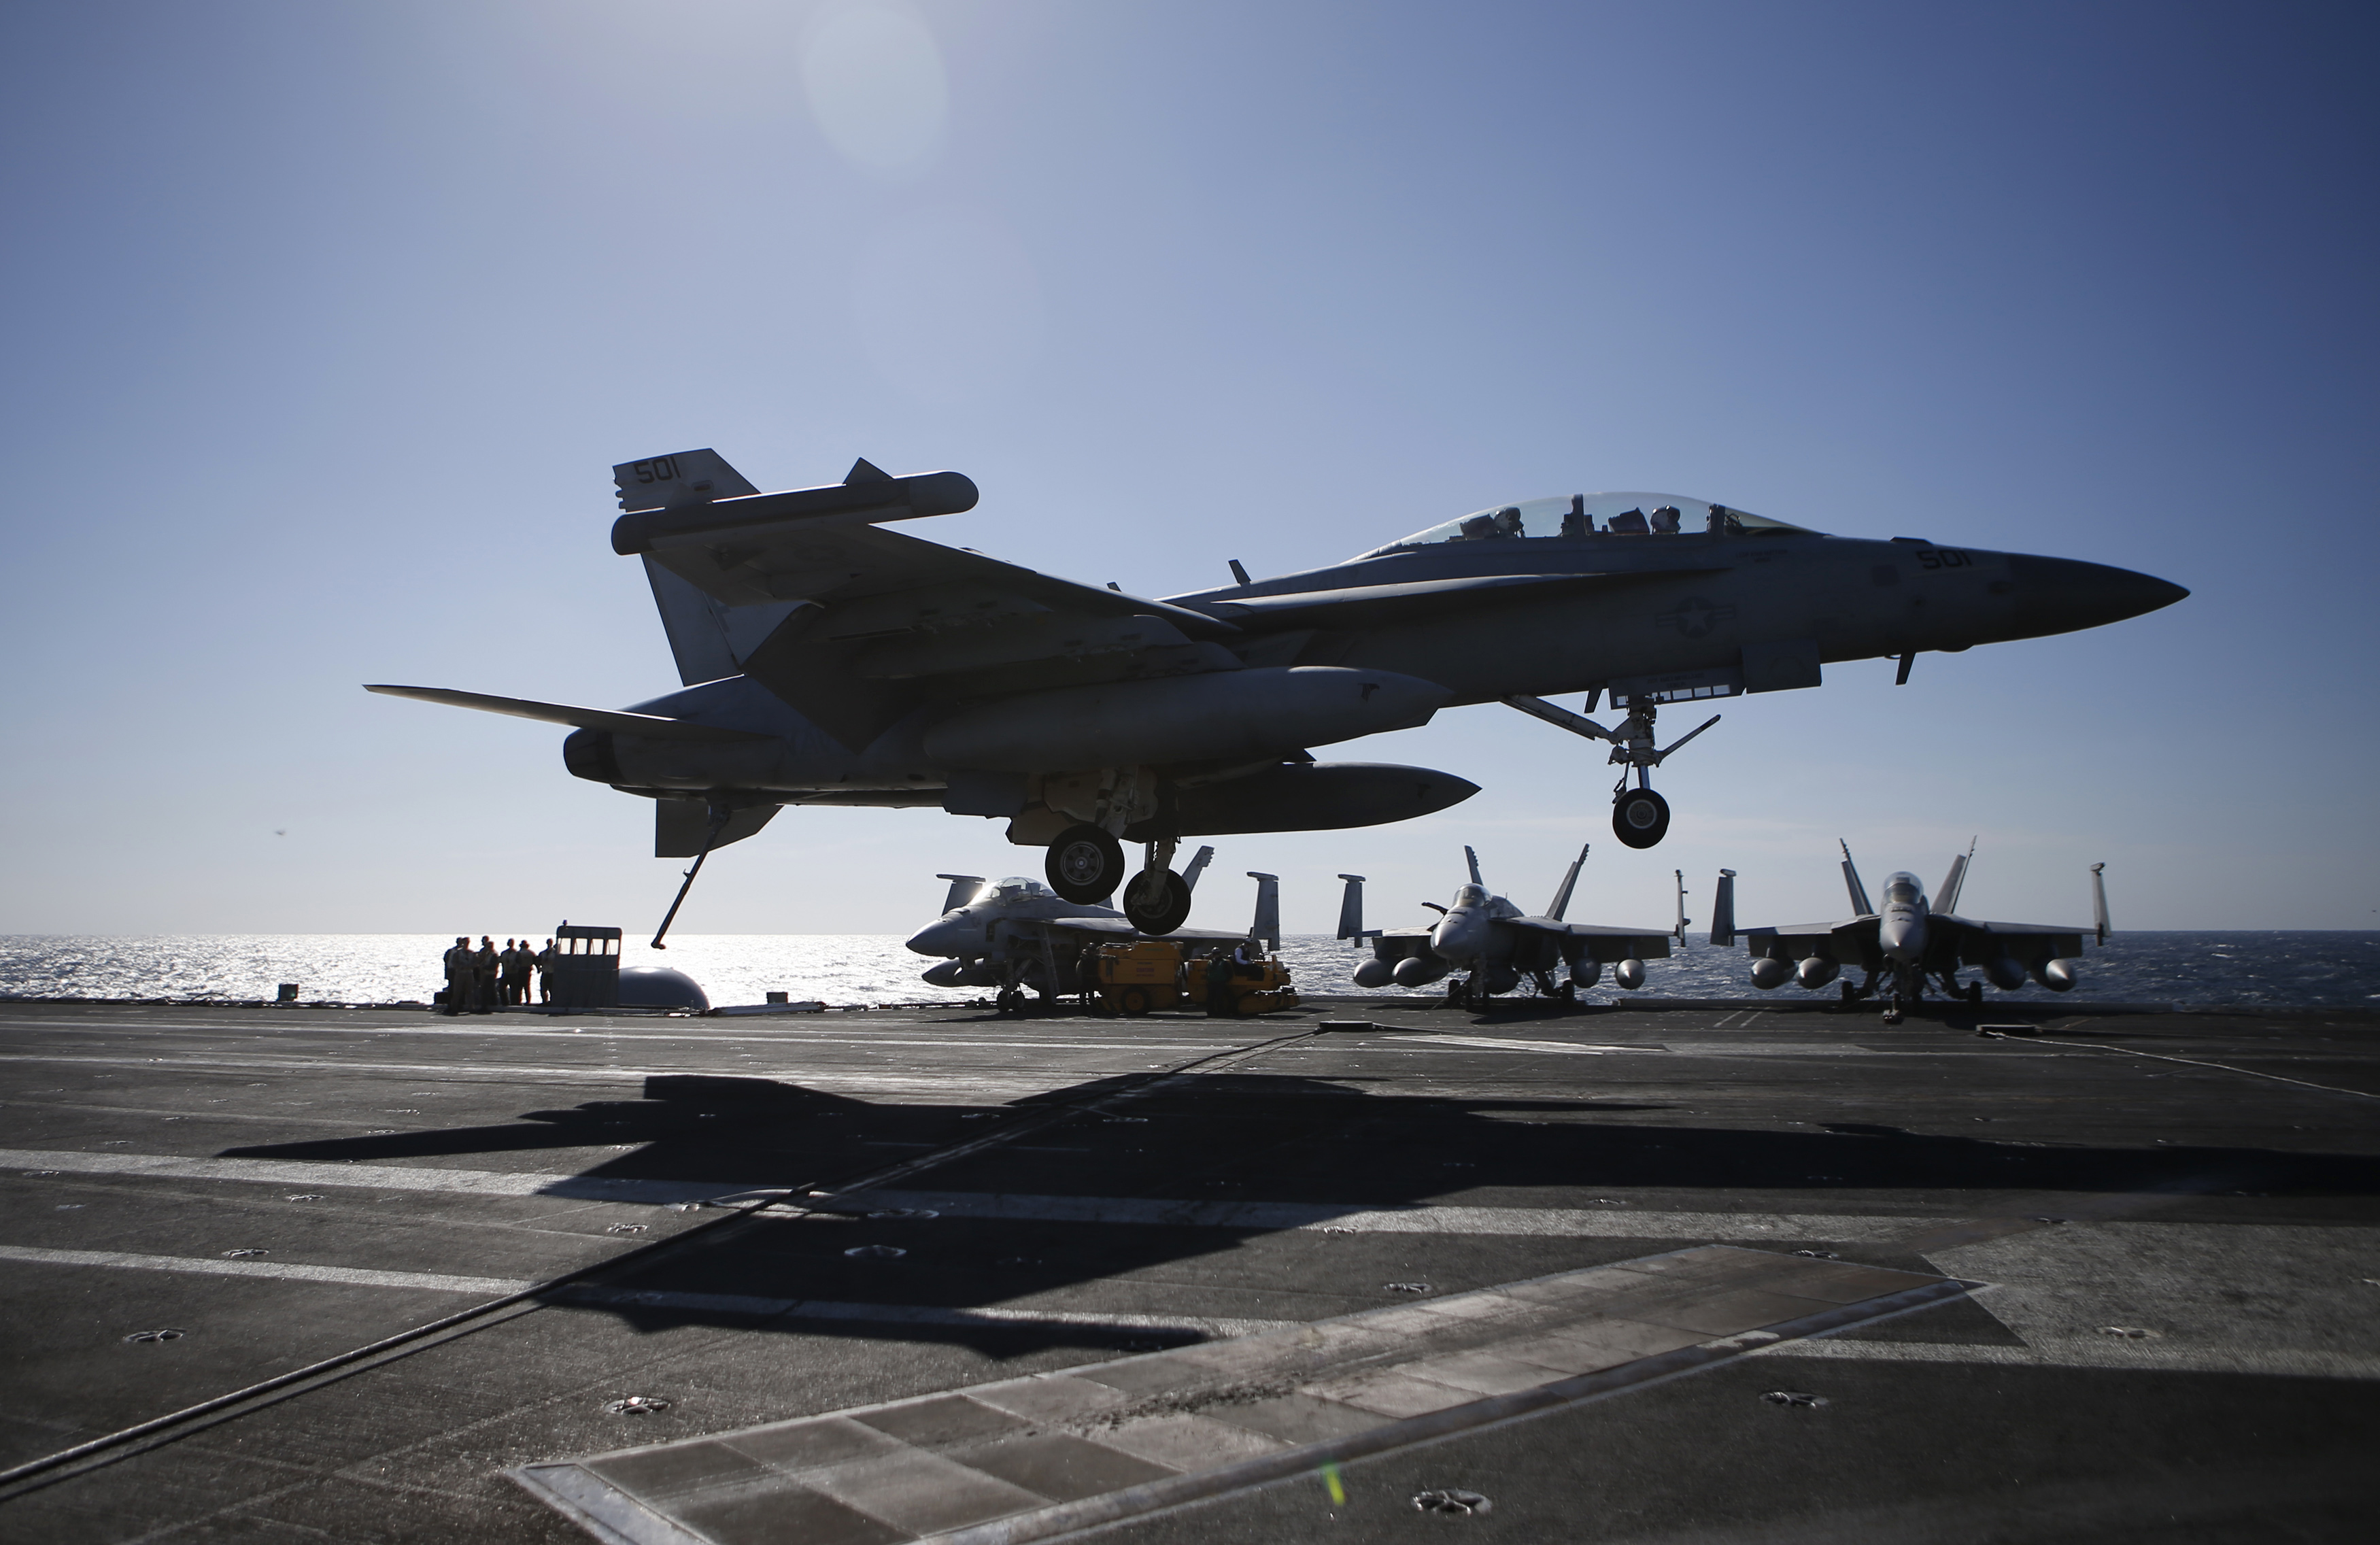 A U.S. Navy F/A-18 Super Hornet fighter lands onto the deck of the USS Ronald Reagan, a Nimitz-class nuclear-powered super carrier, during a joint naval drill between South Korea and the U.S.  on Oct. 28, 2015 in the West Sea, South Korea.